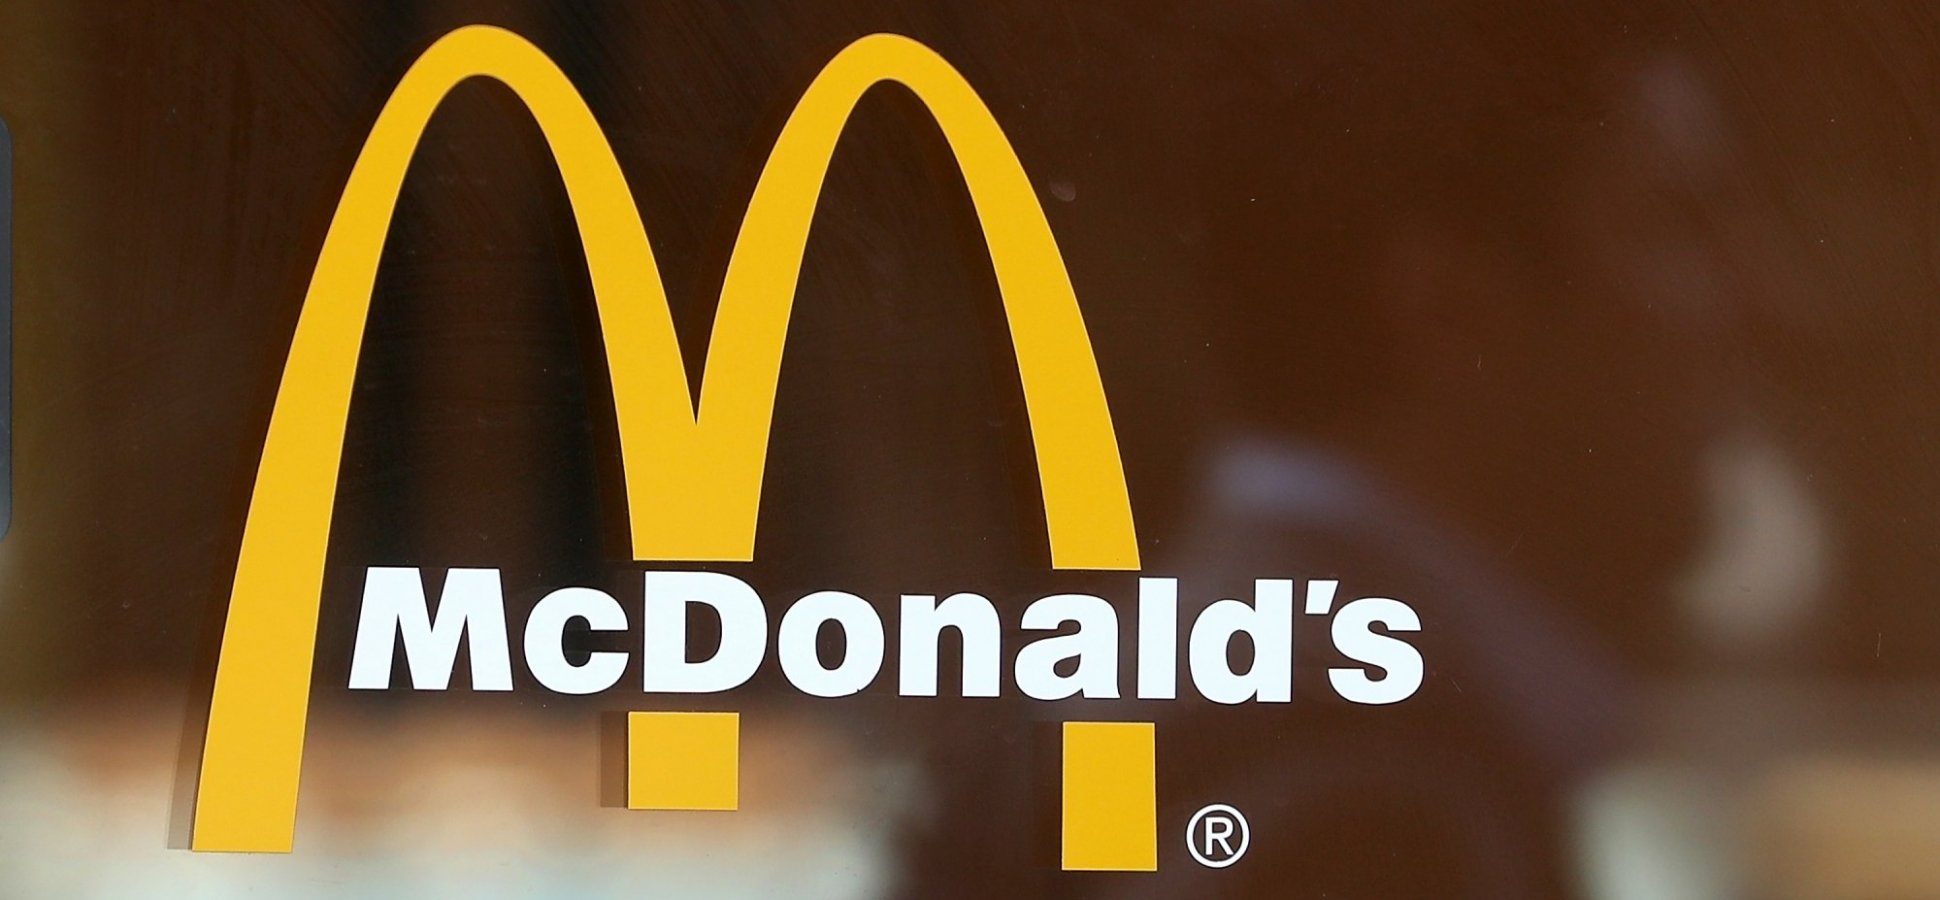 McDonald's Just Got Some Truly Brutal News That'll Make Customers Very Worried